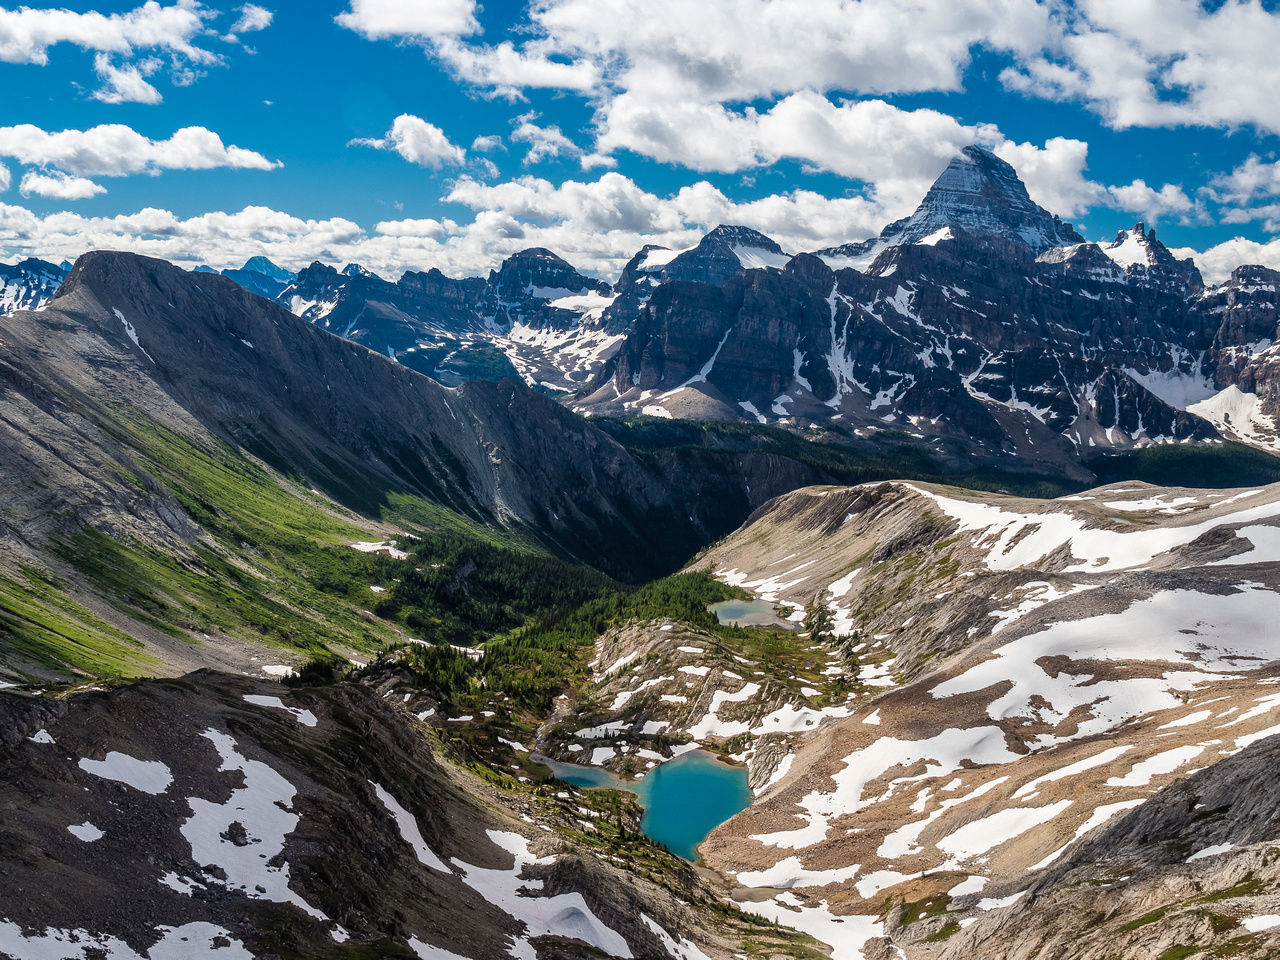 Once again we are reminded why the suffering of a new route is worth it. I certainly haven't seen this photo before! Nub peak at left with The Towers, Terrapin, Magog, Assiniboine from L to R in the b